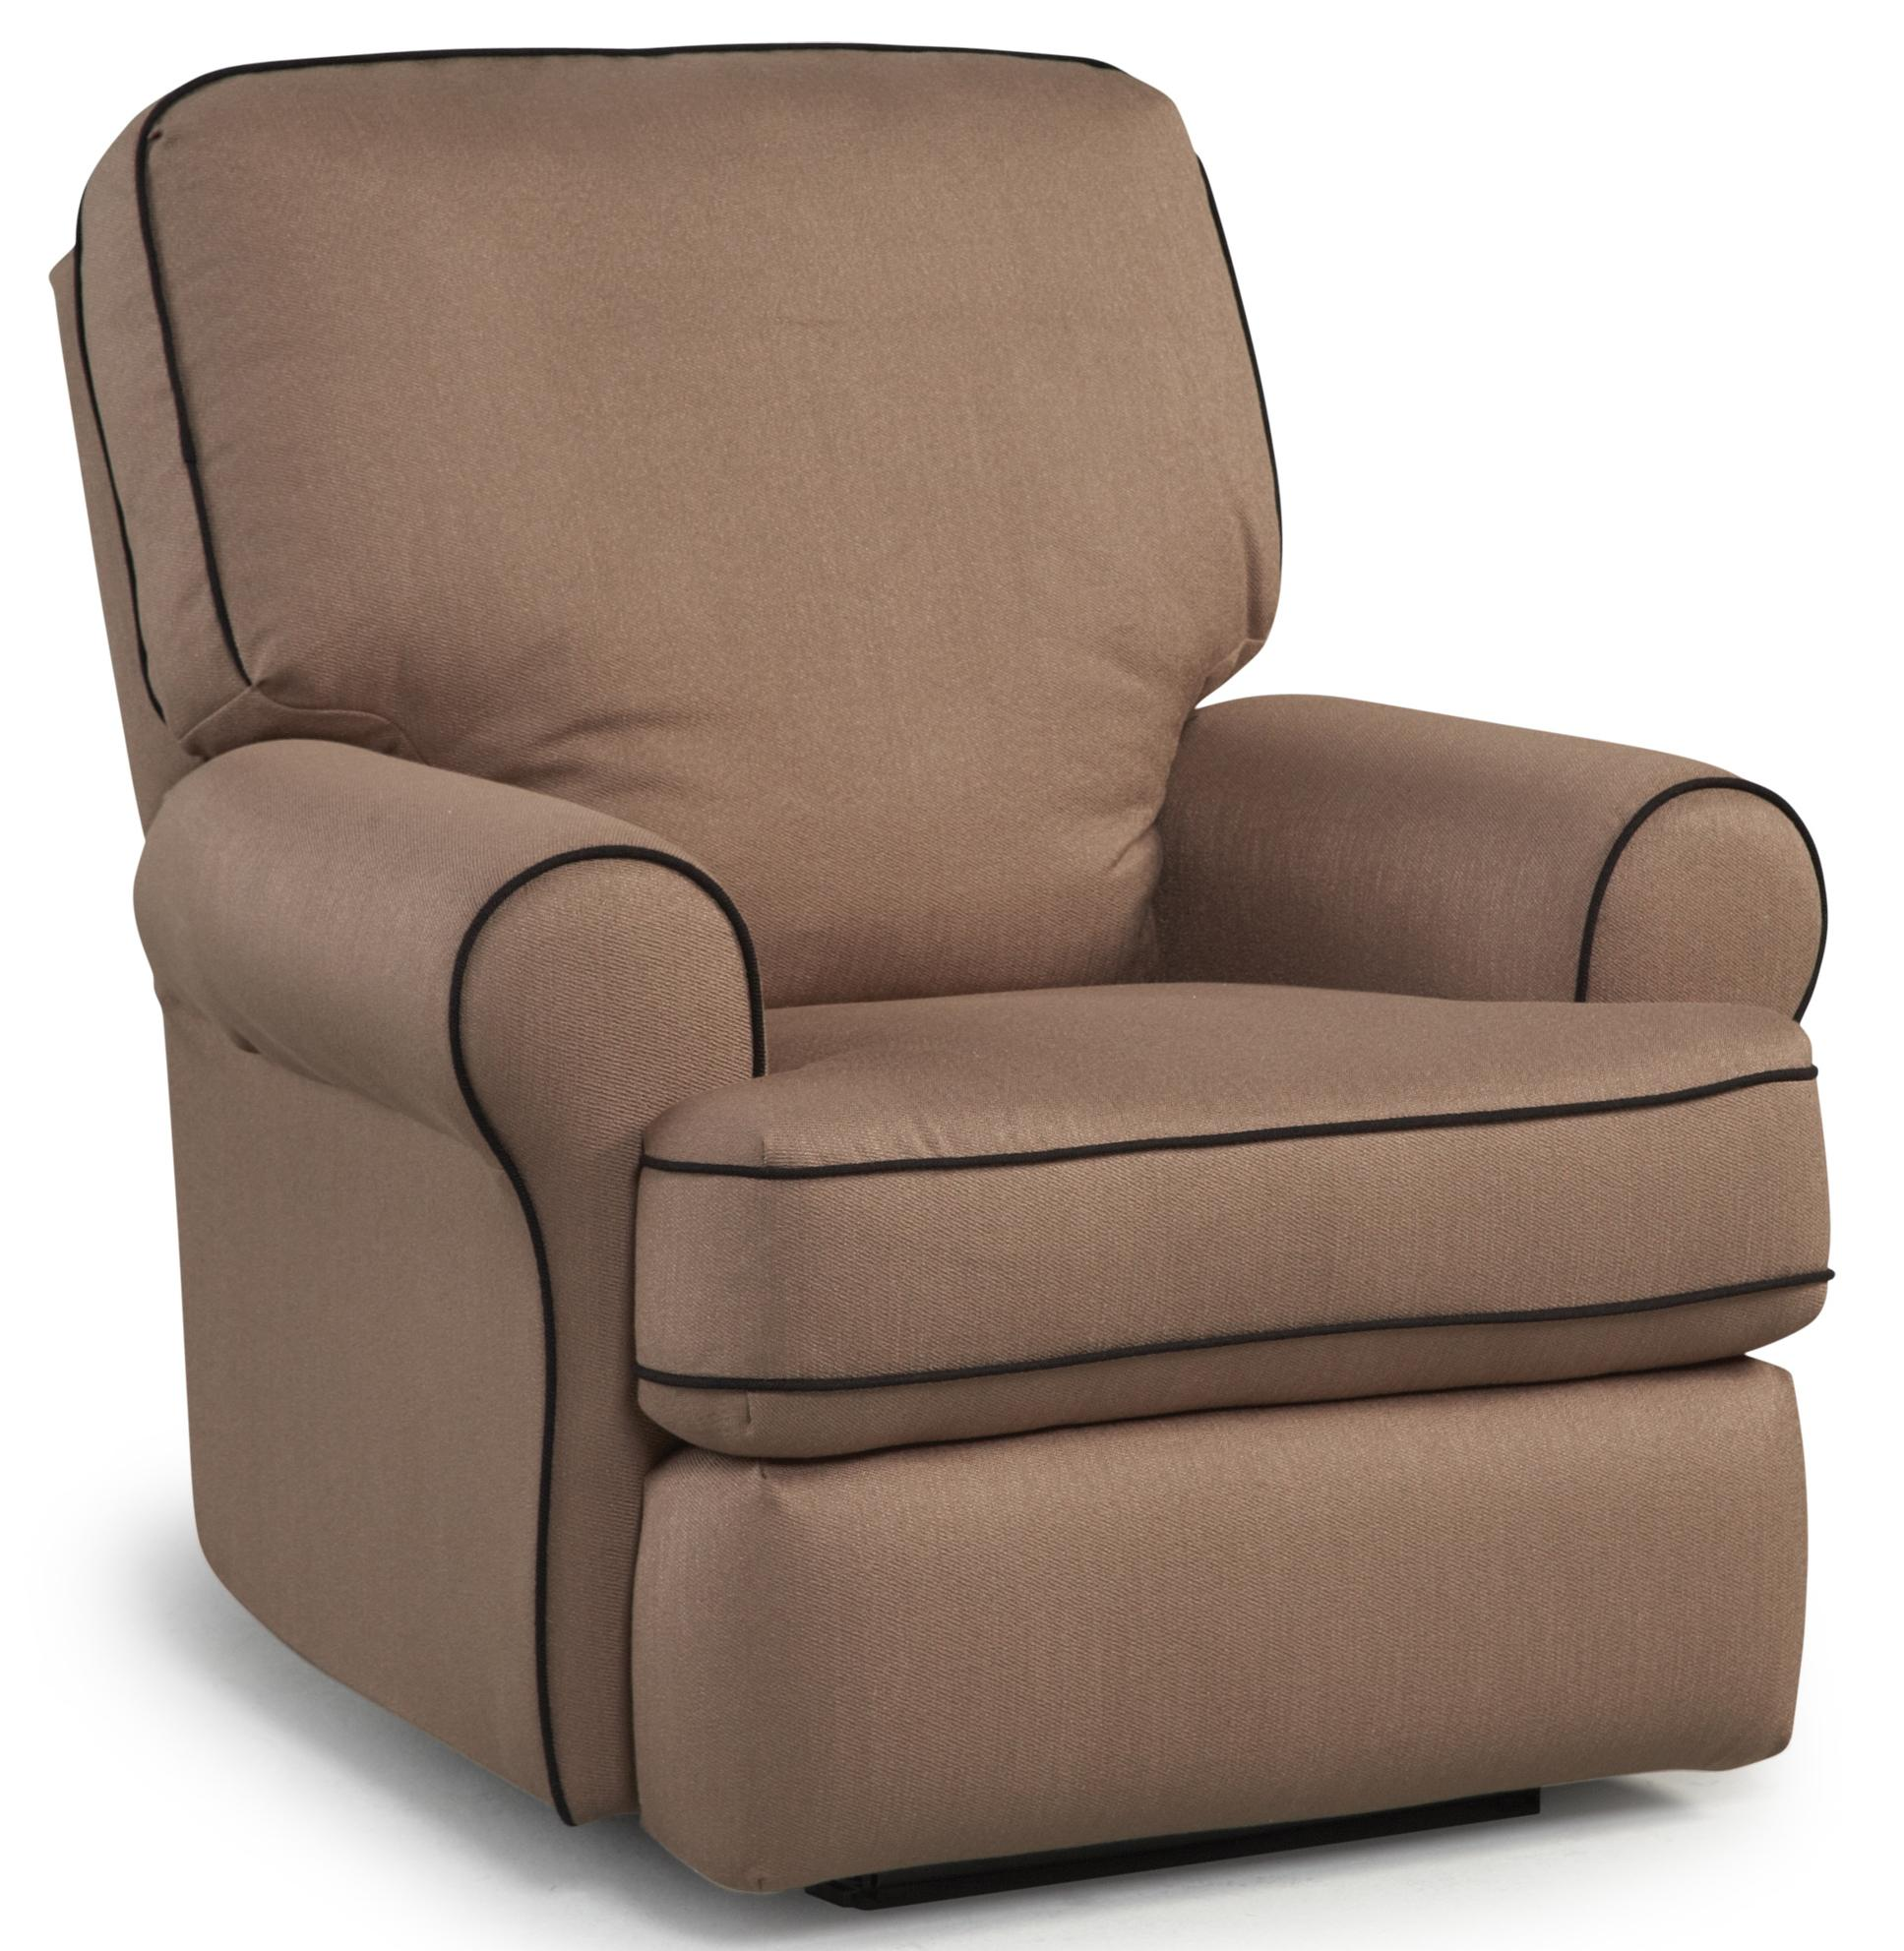 Storytime Chair Best Chairs Storytime Series Storytime Recliners Tryp Power Rocker